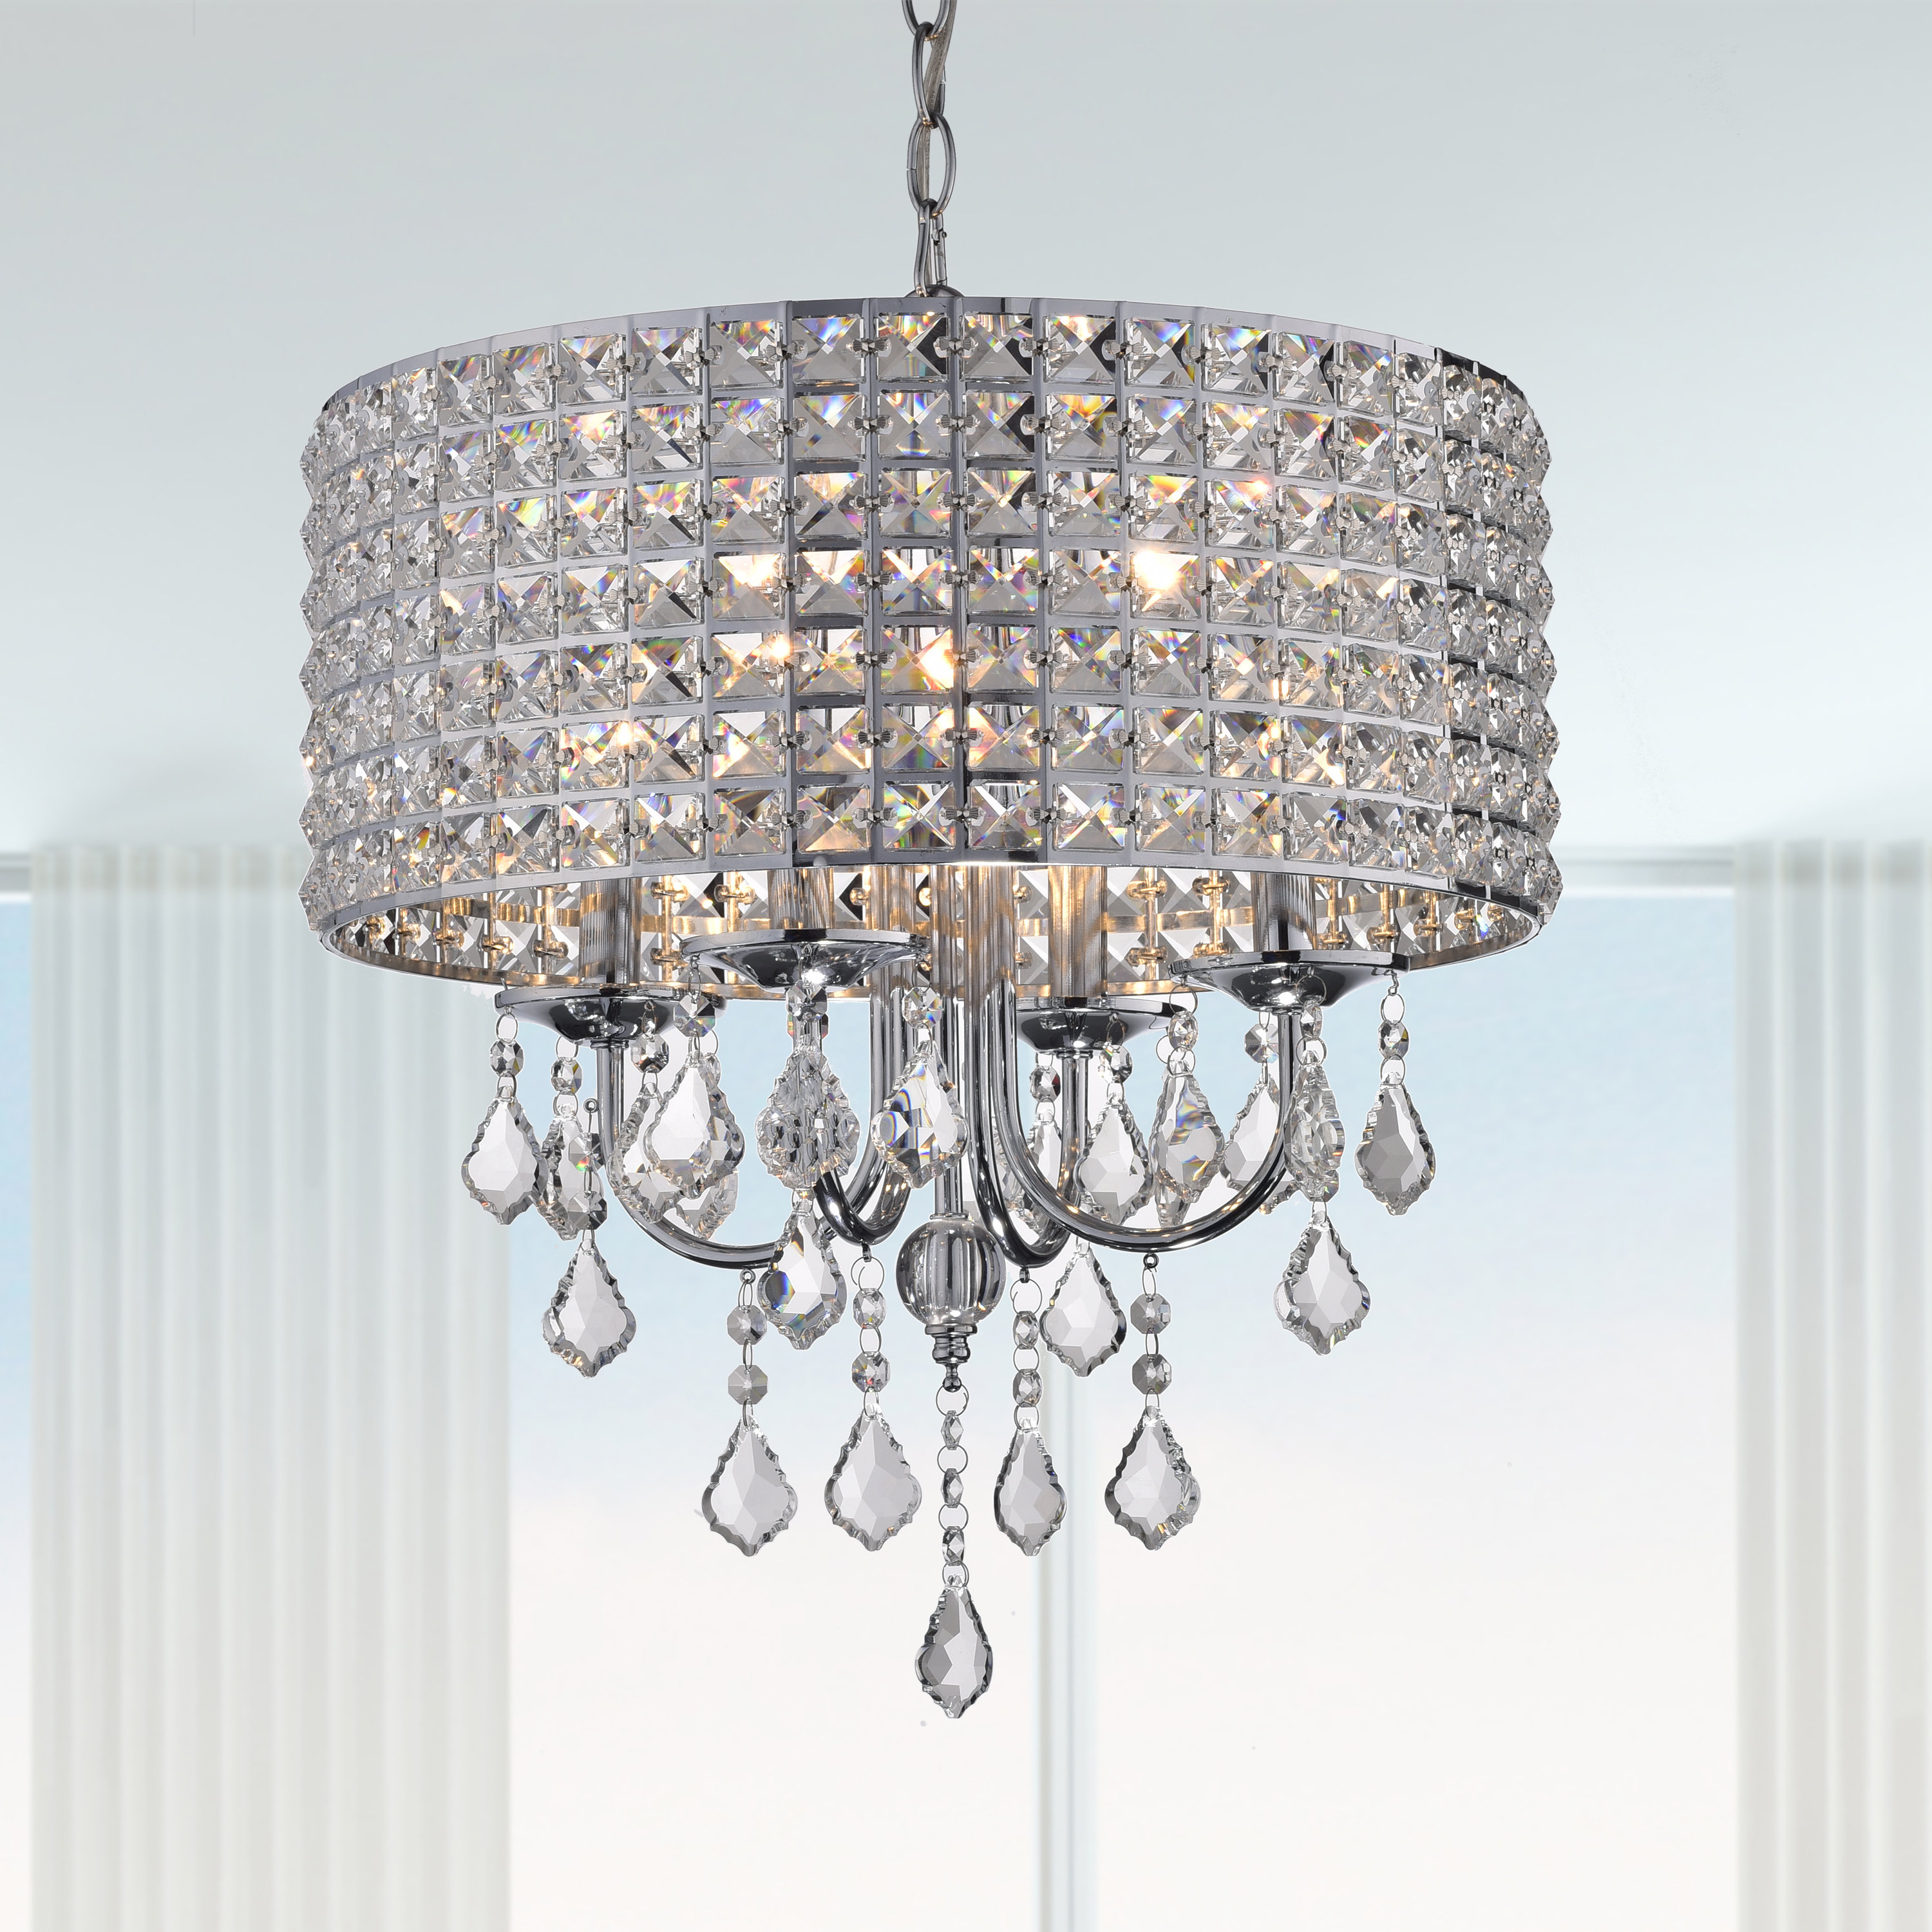 Current Albano 4 Light Crystal Chandelier Throughout Mckamey 4 Light Crystal Chandeliers (View 6 of 20)